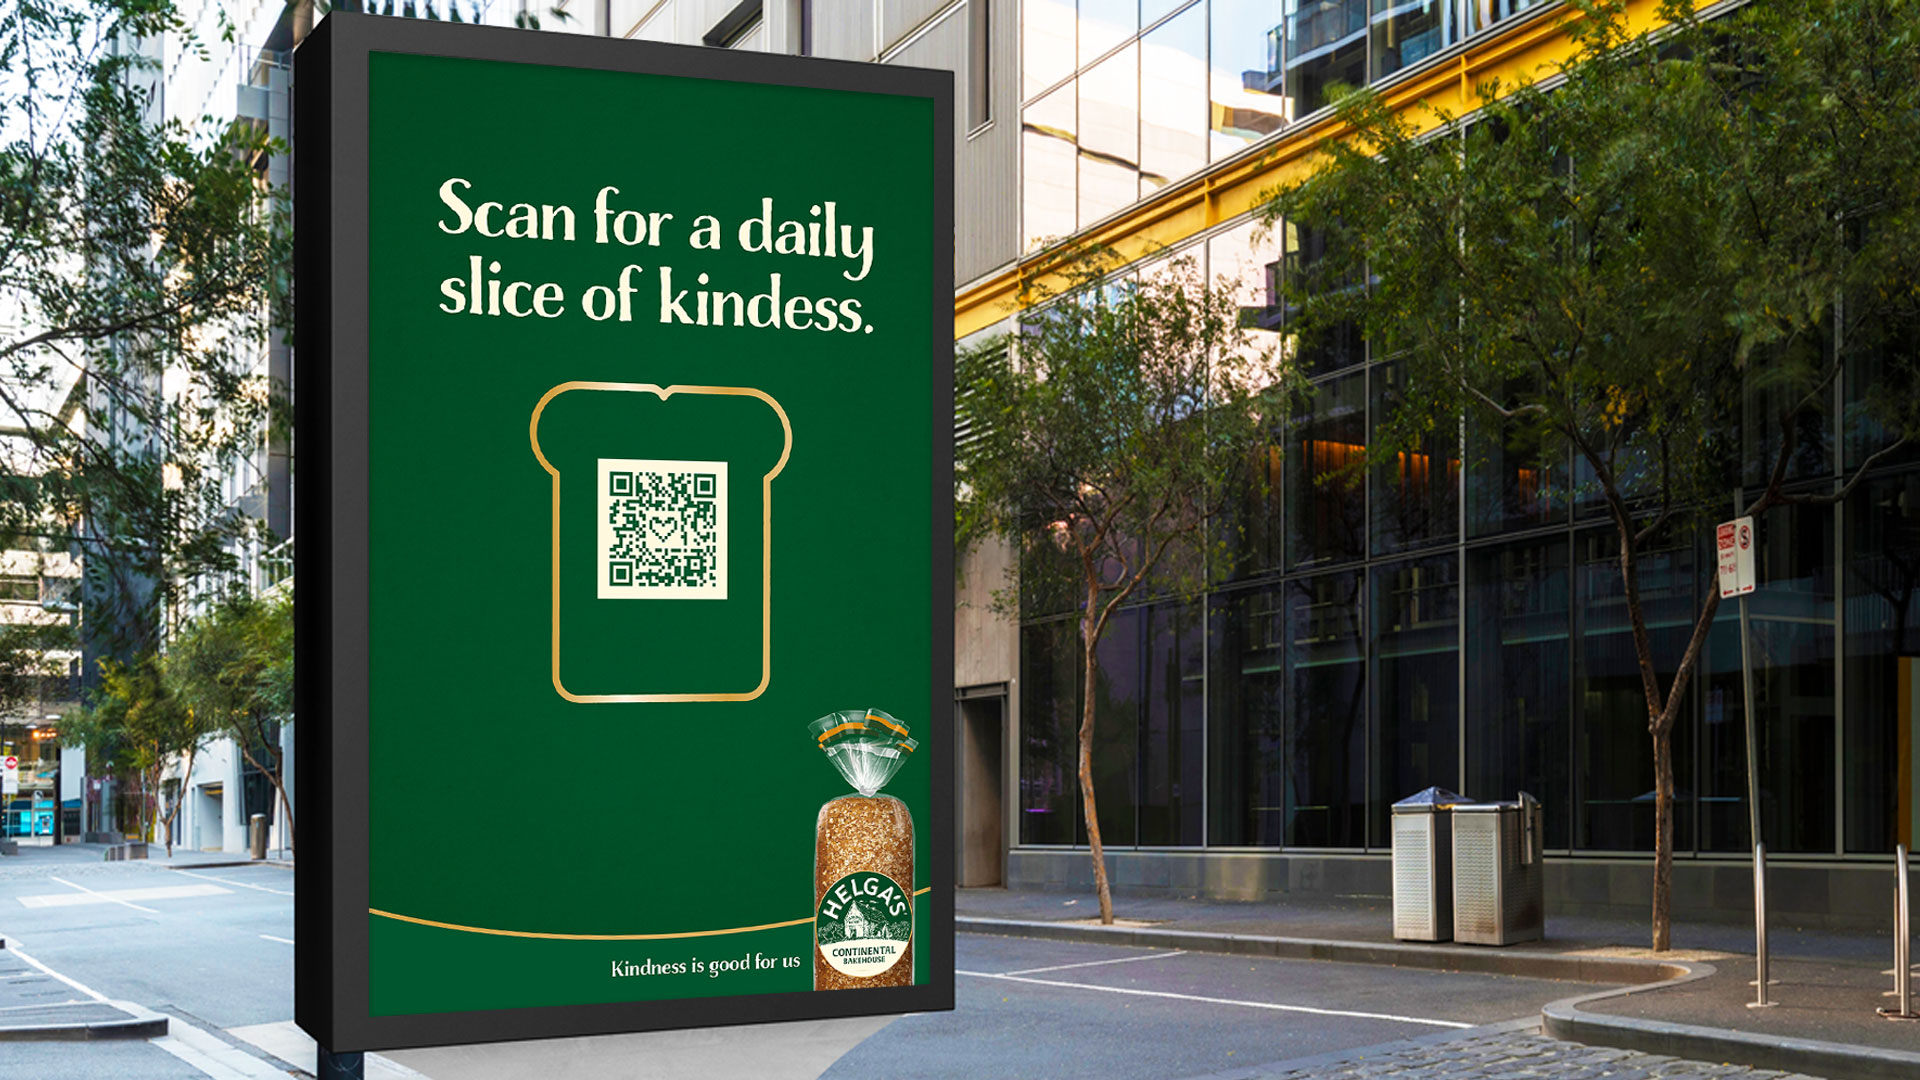 Helga's kindness hero image of campaign visual with loaf of bread